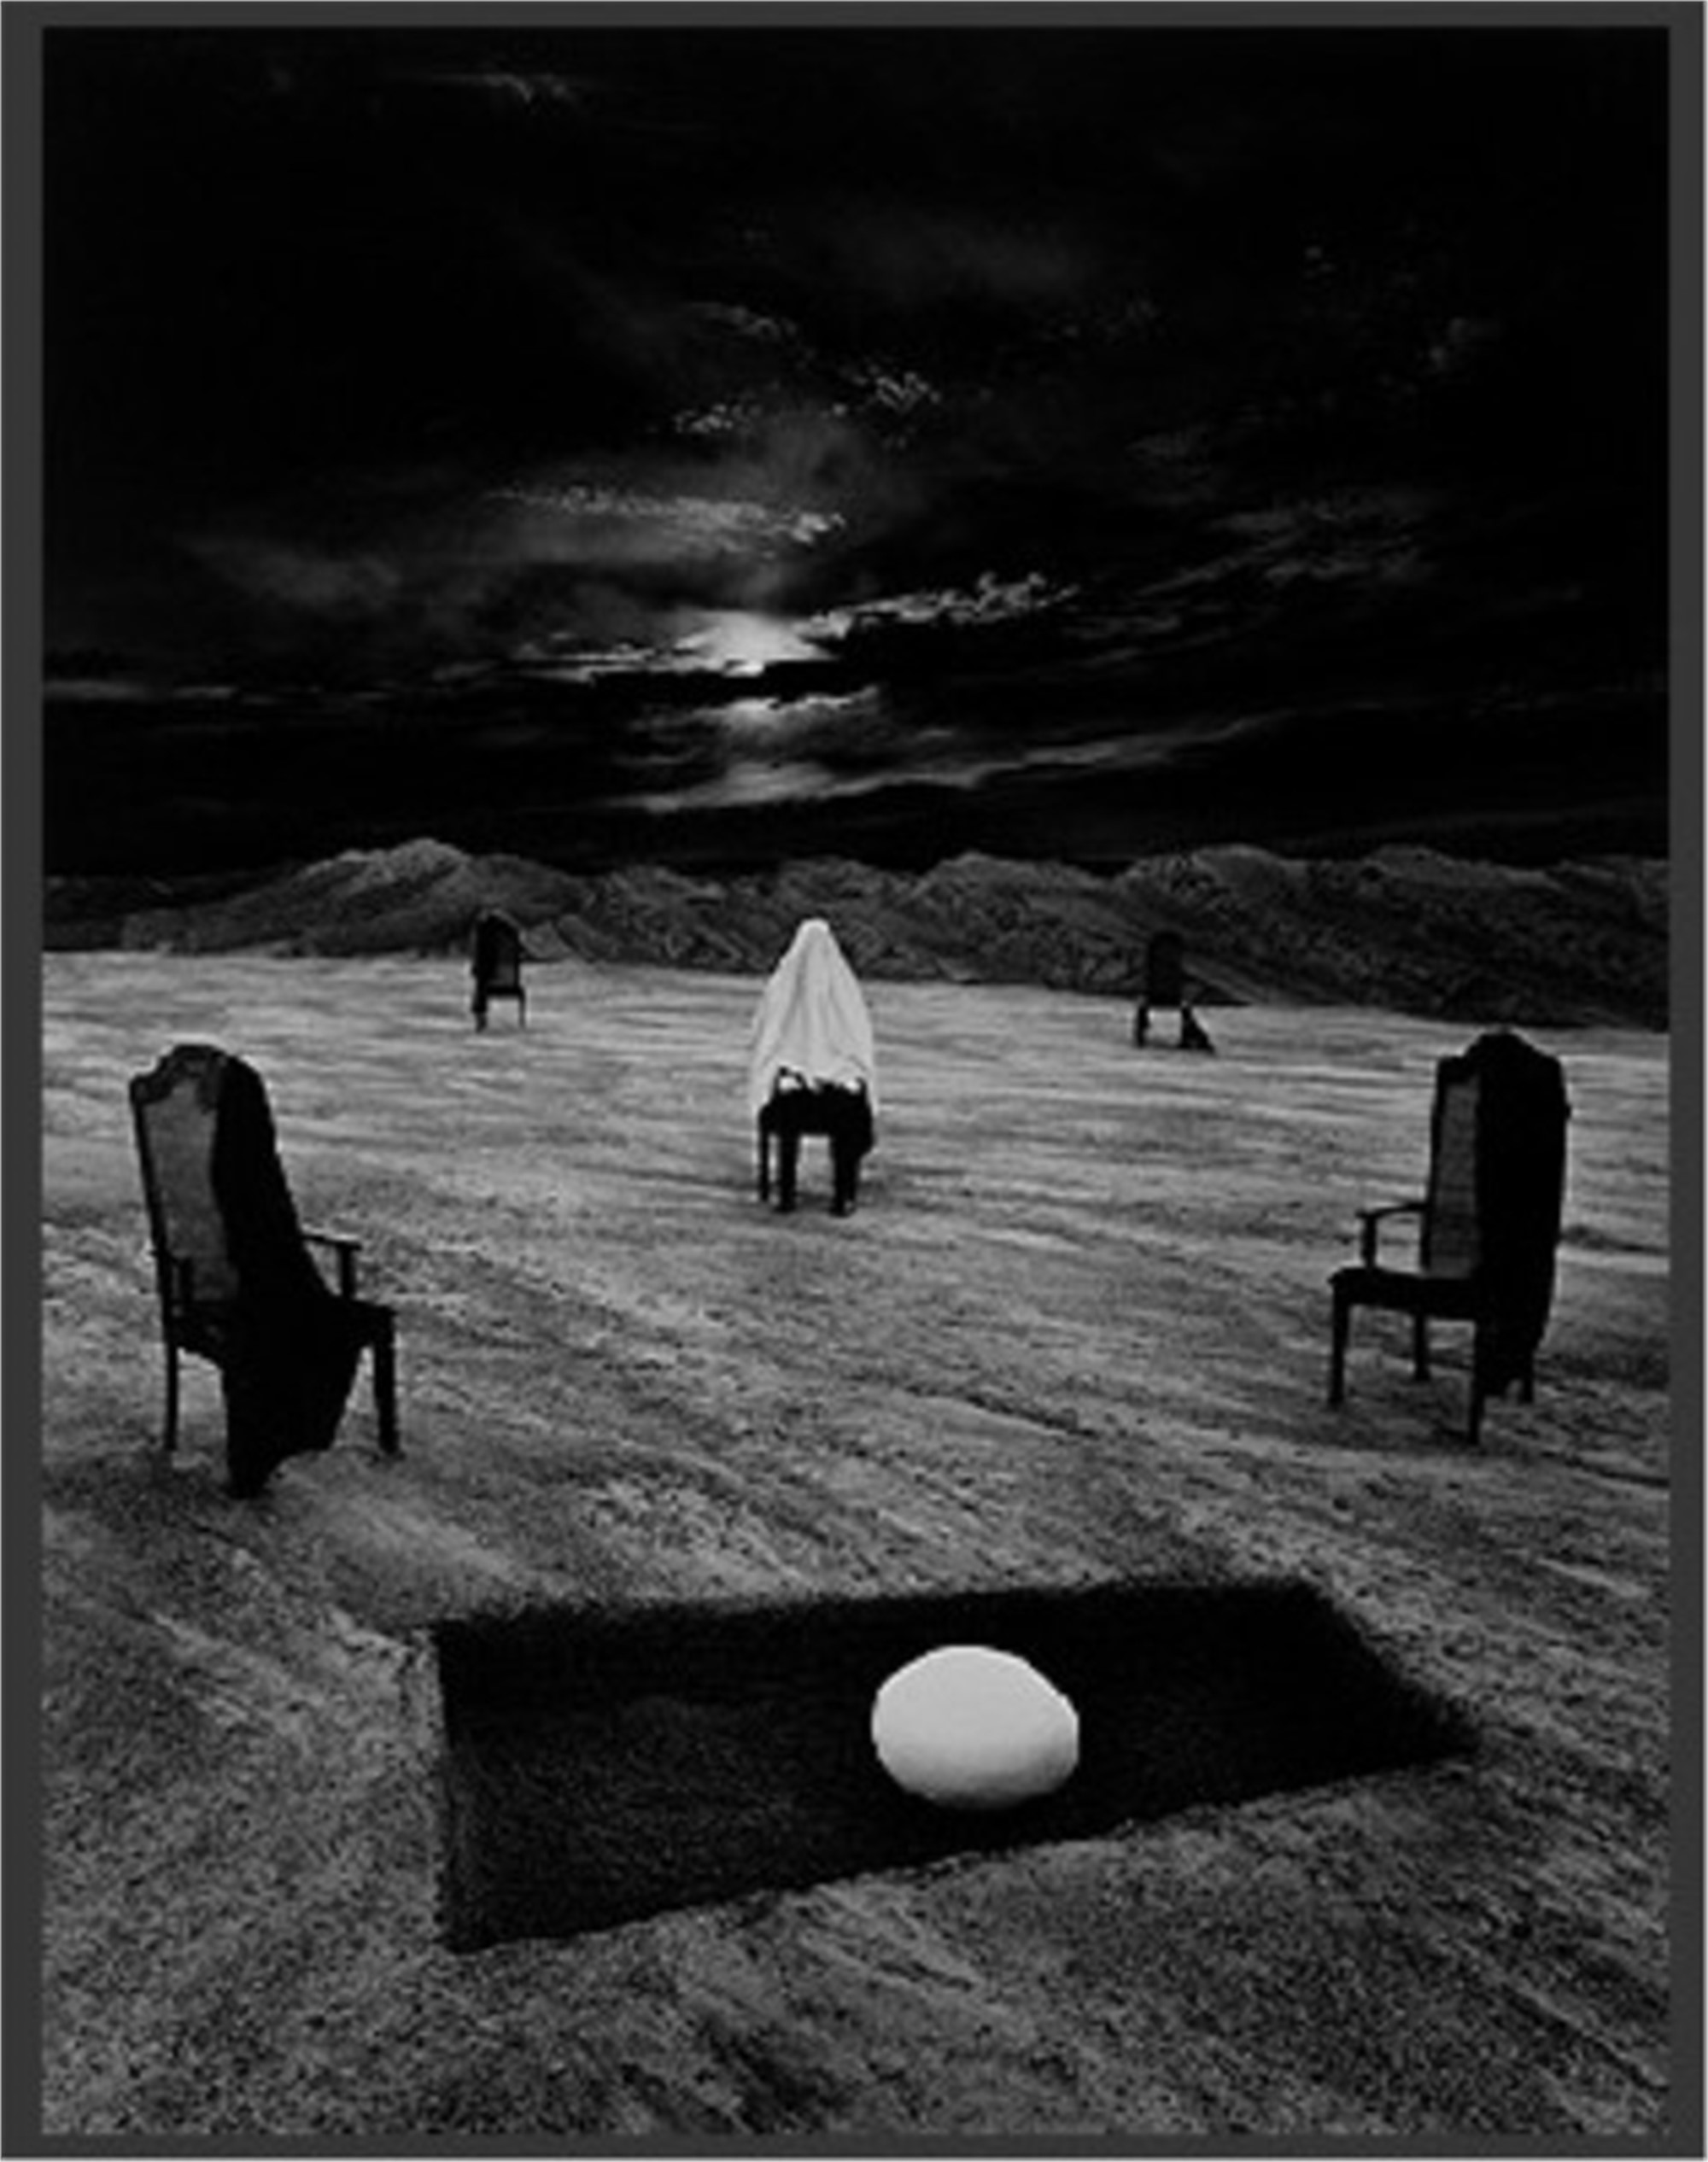 Prophecy by Misha Gordin